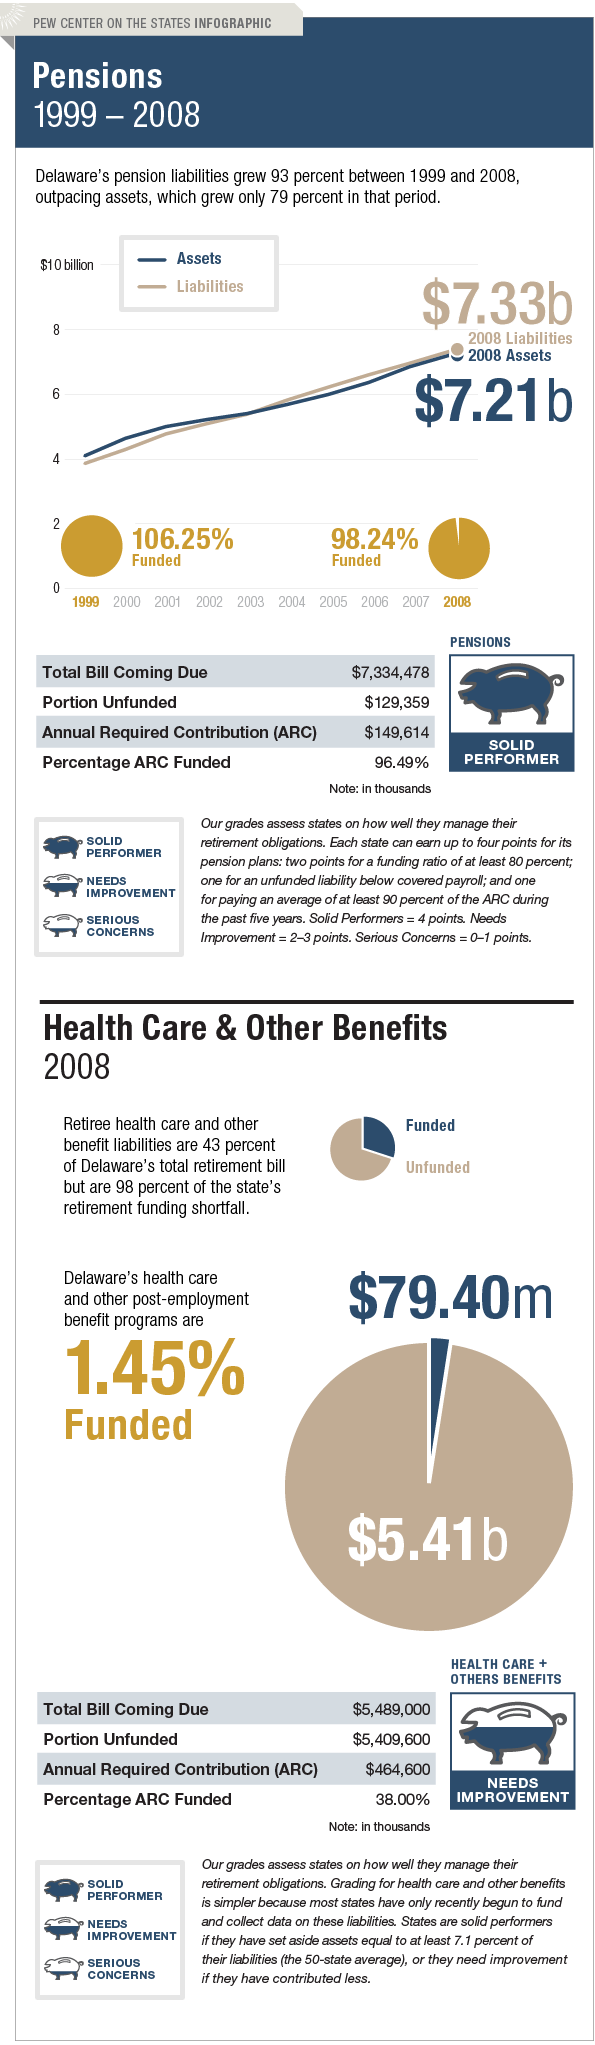 The Trillion Dollar Gap Delaware Pension Funding